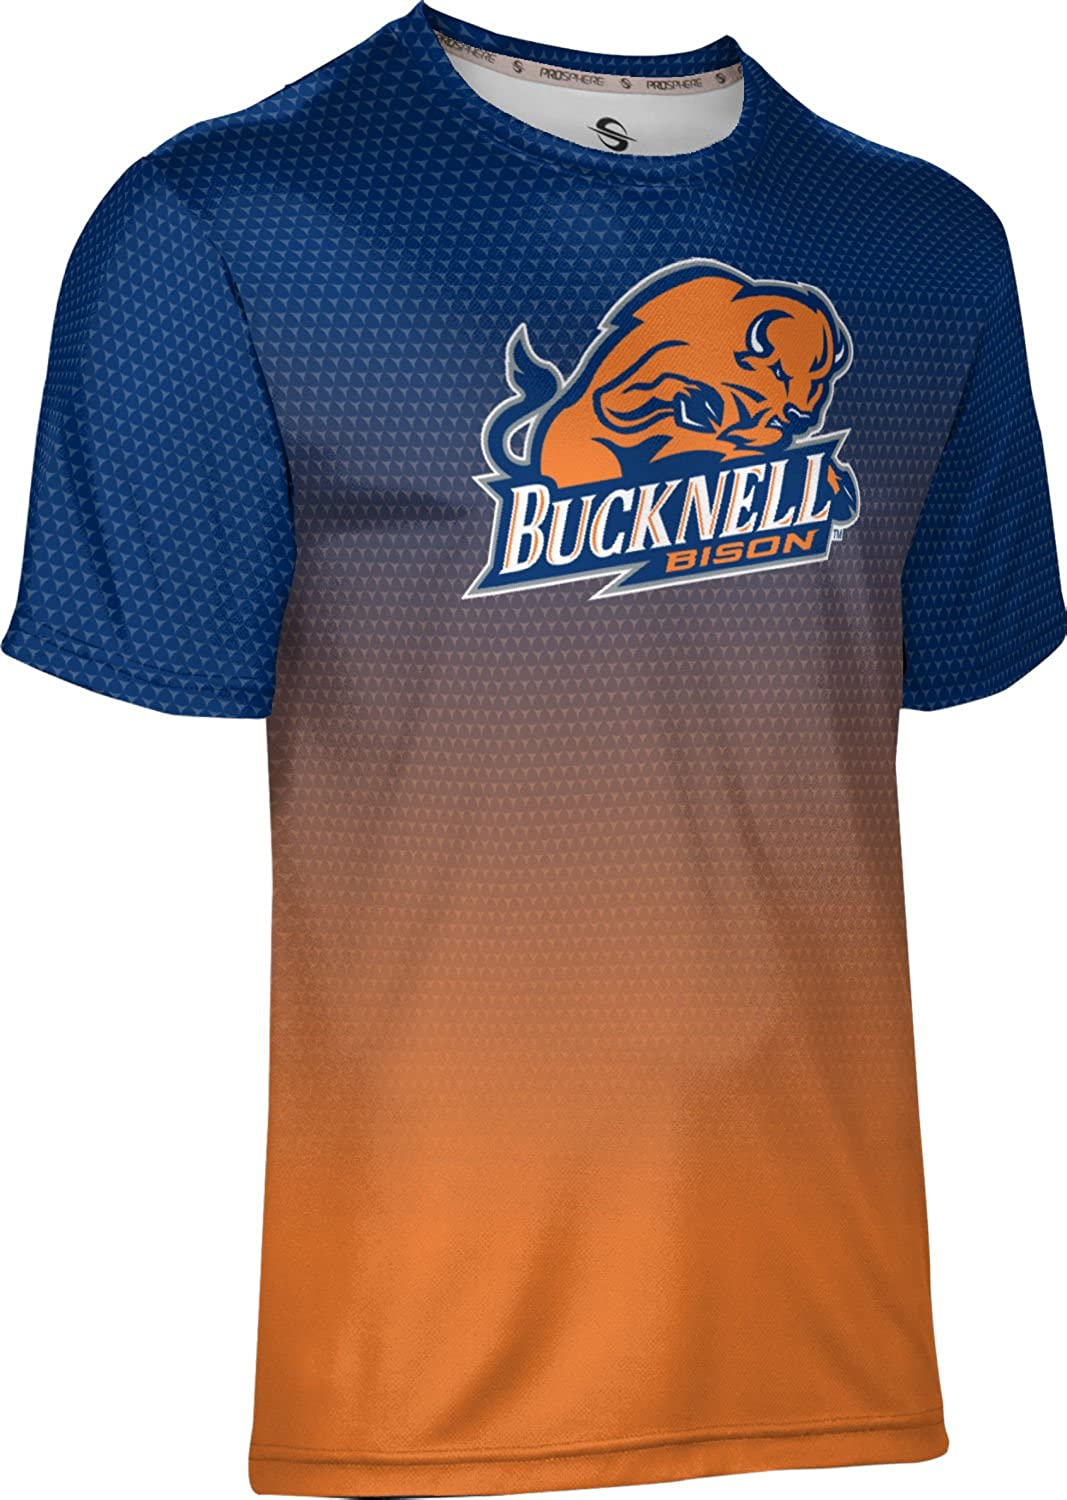 ProSphere Bucknell University Boys Performance T-Shirt Zoom